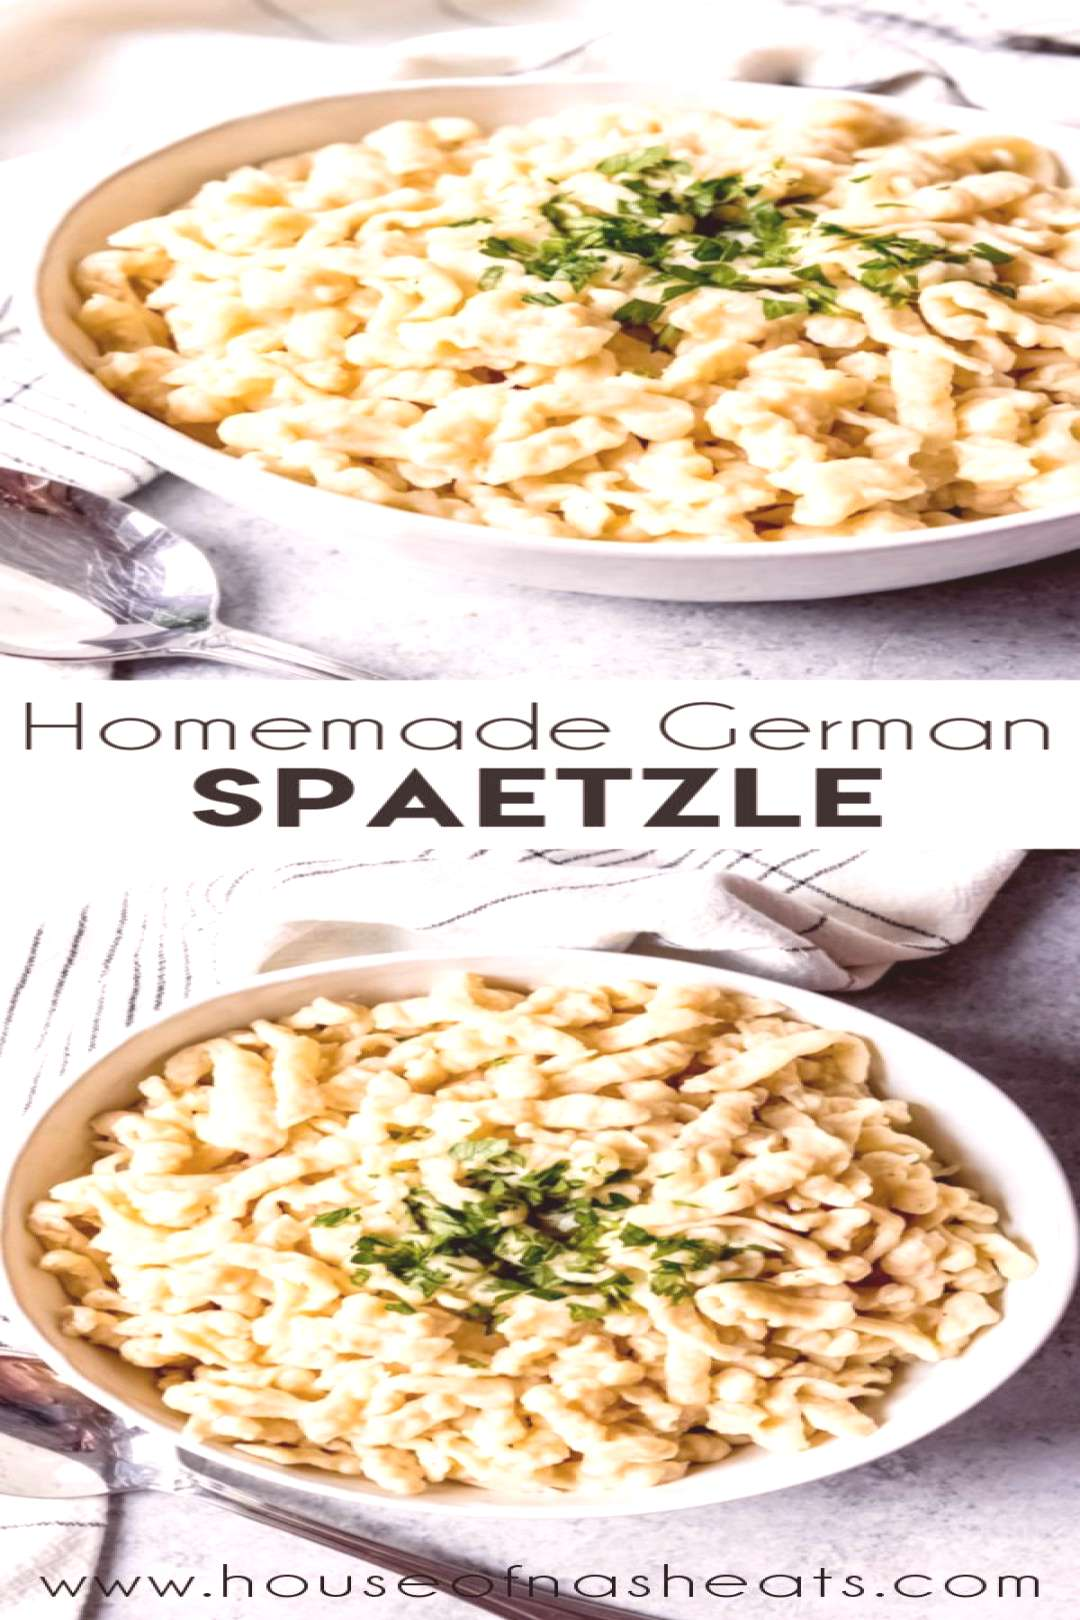 Homemade German Spaetzle are part noodle, part dumpling, and they go with practically anything! Sau